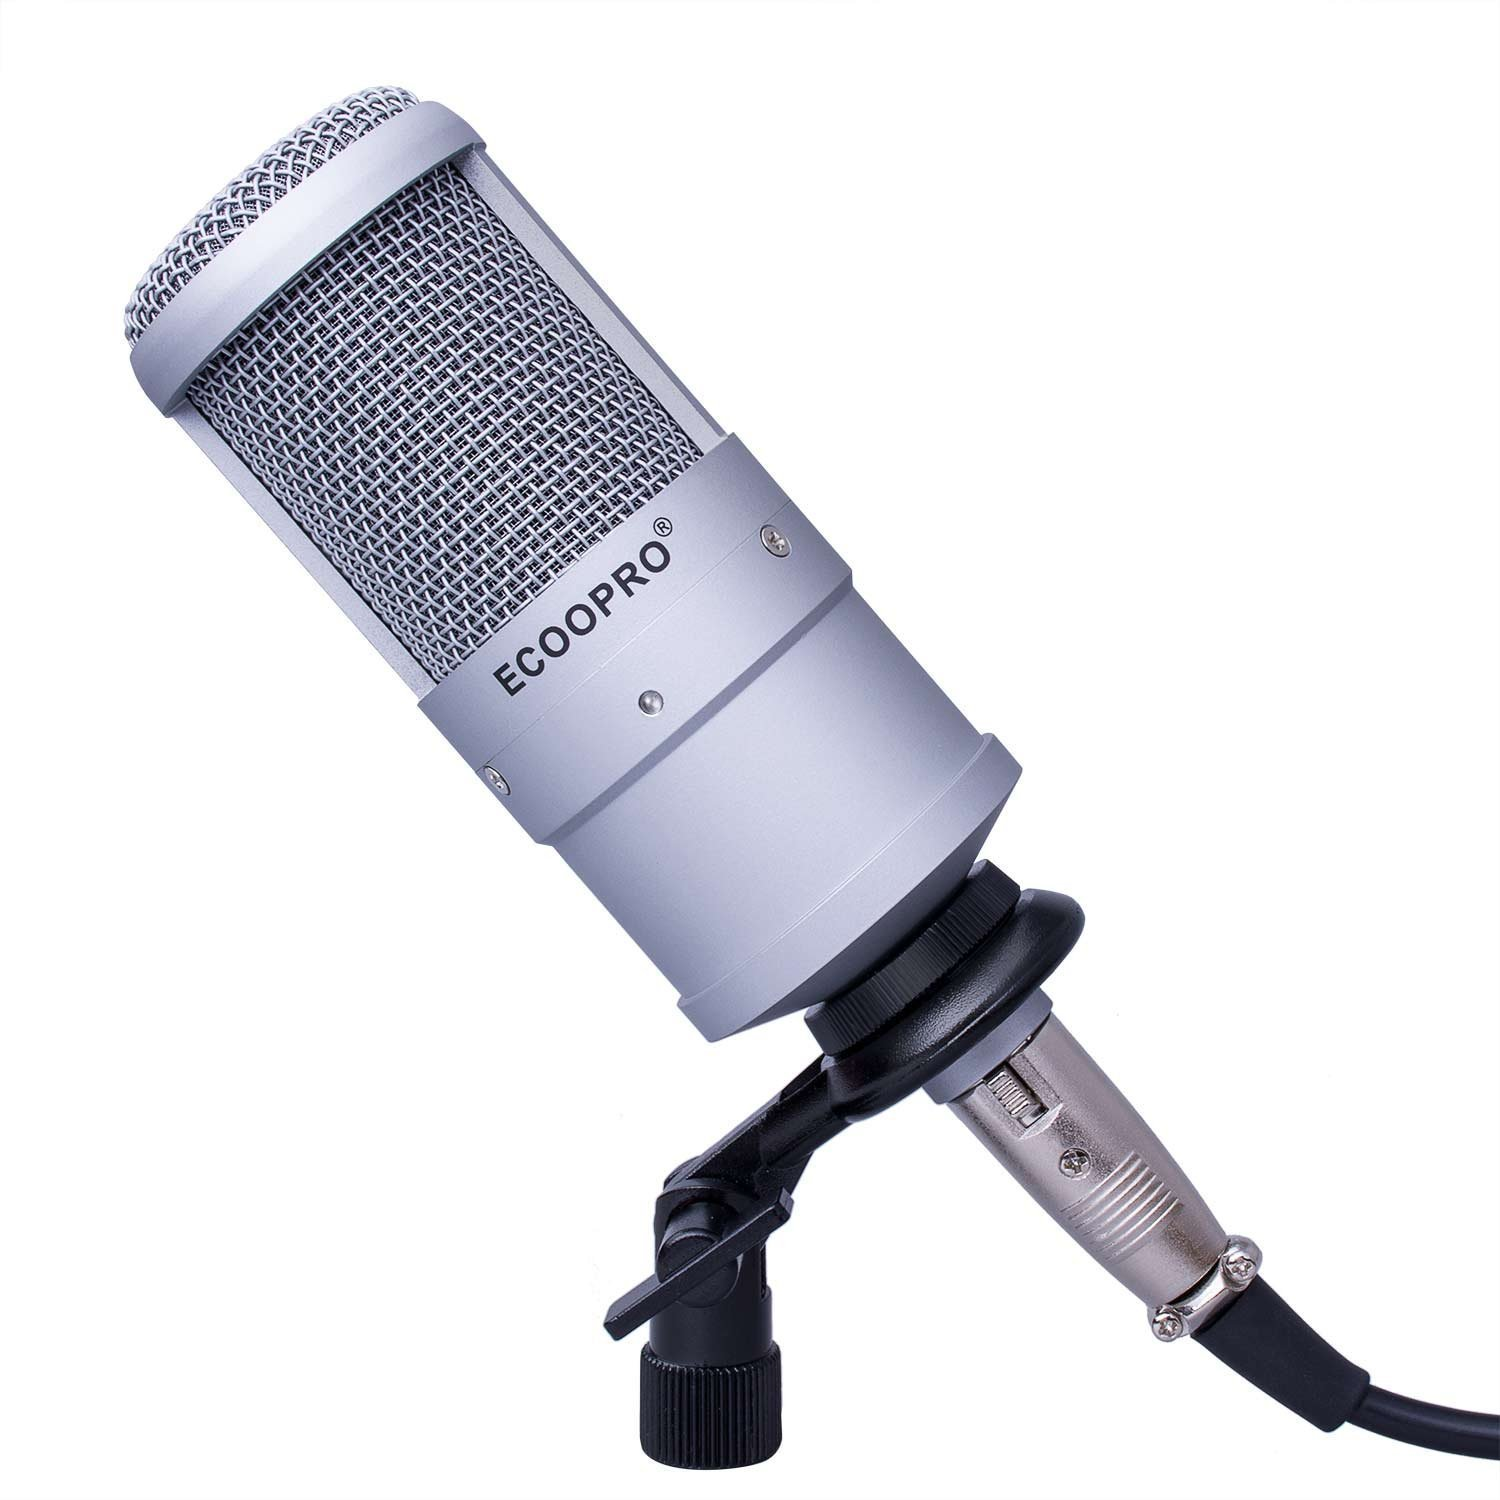 Best Budget Microphones for Podcasting - ECOOPRO Studio Condenser Recording Microphone